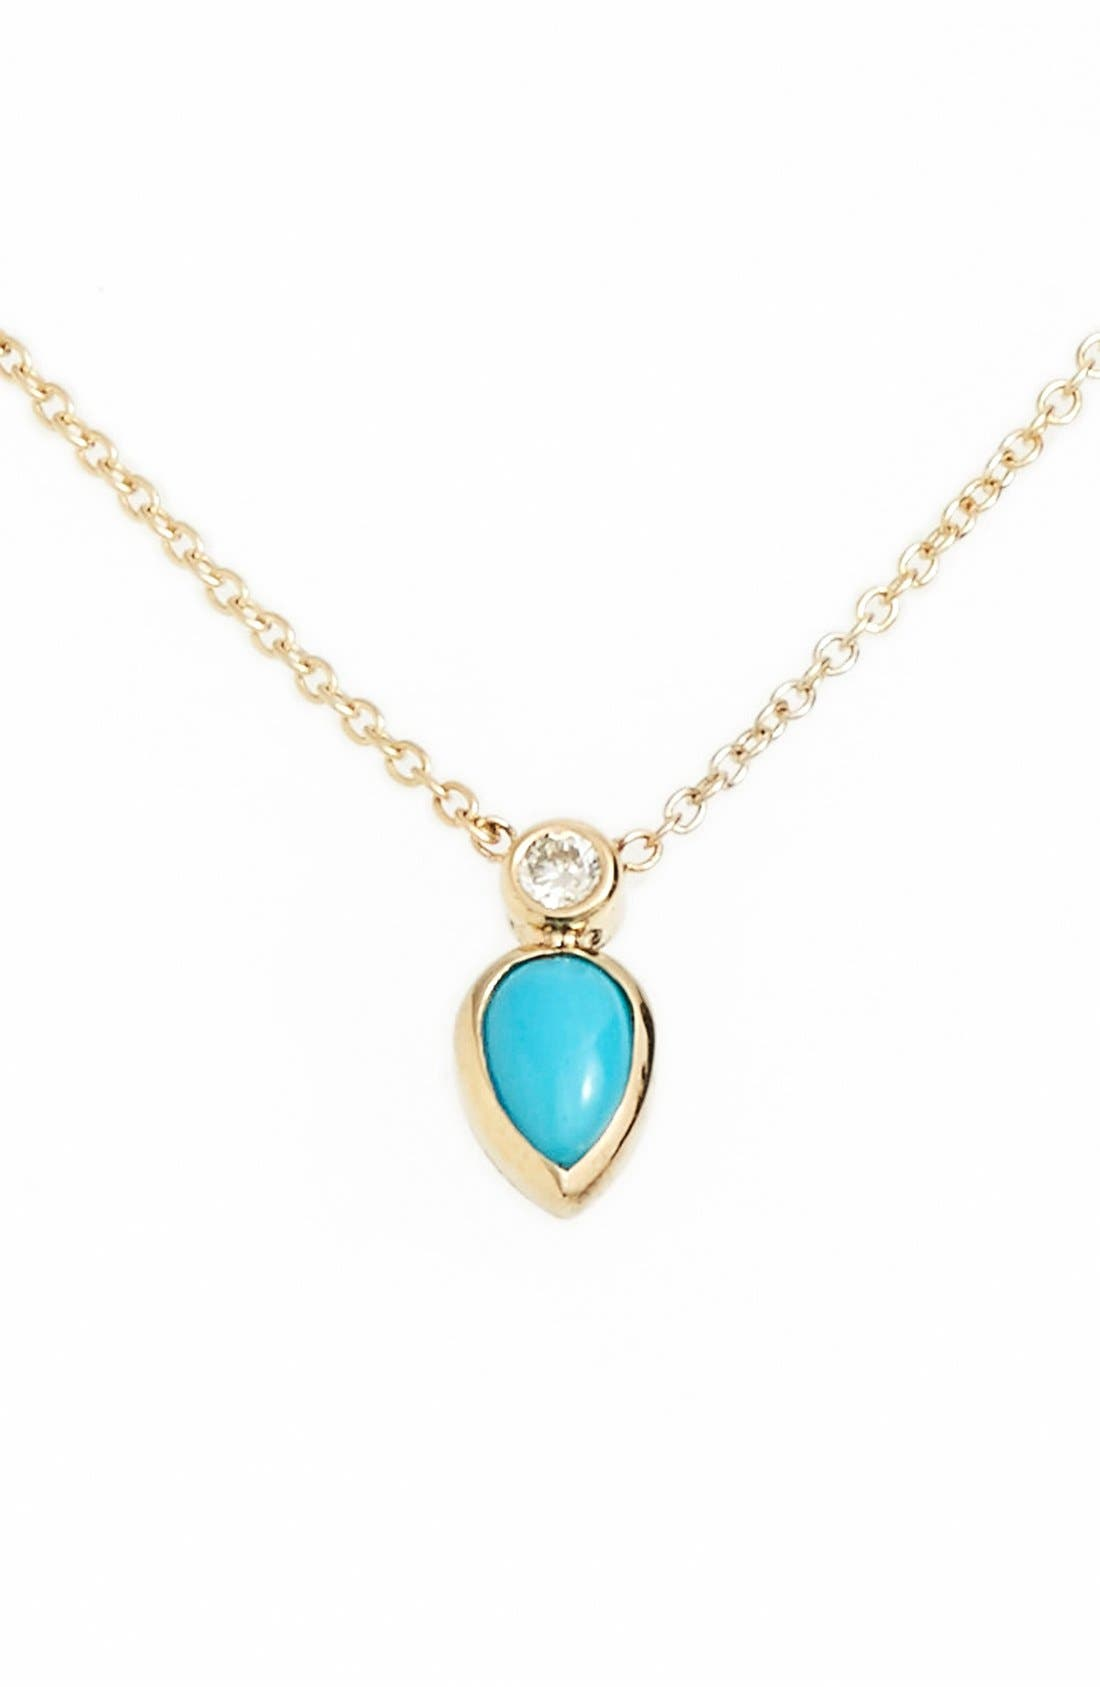 Zoë Chicco Turquoise Pendant Necklace